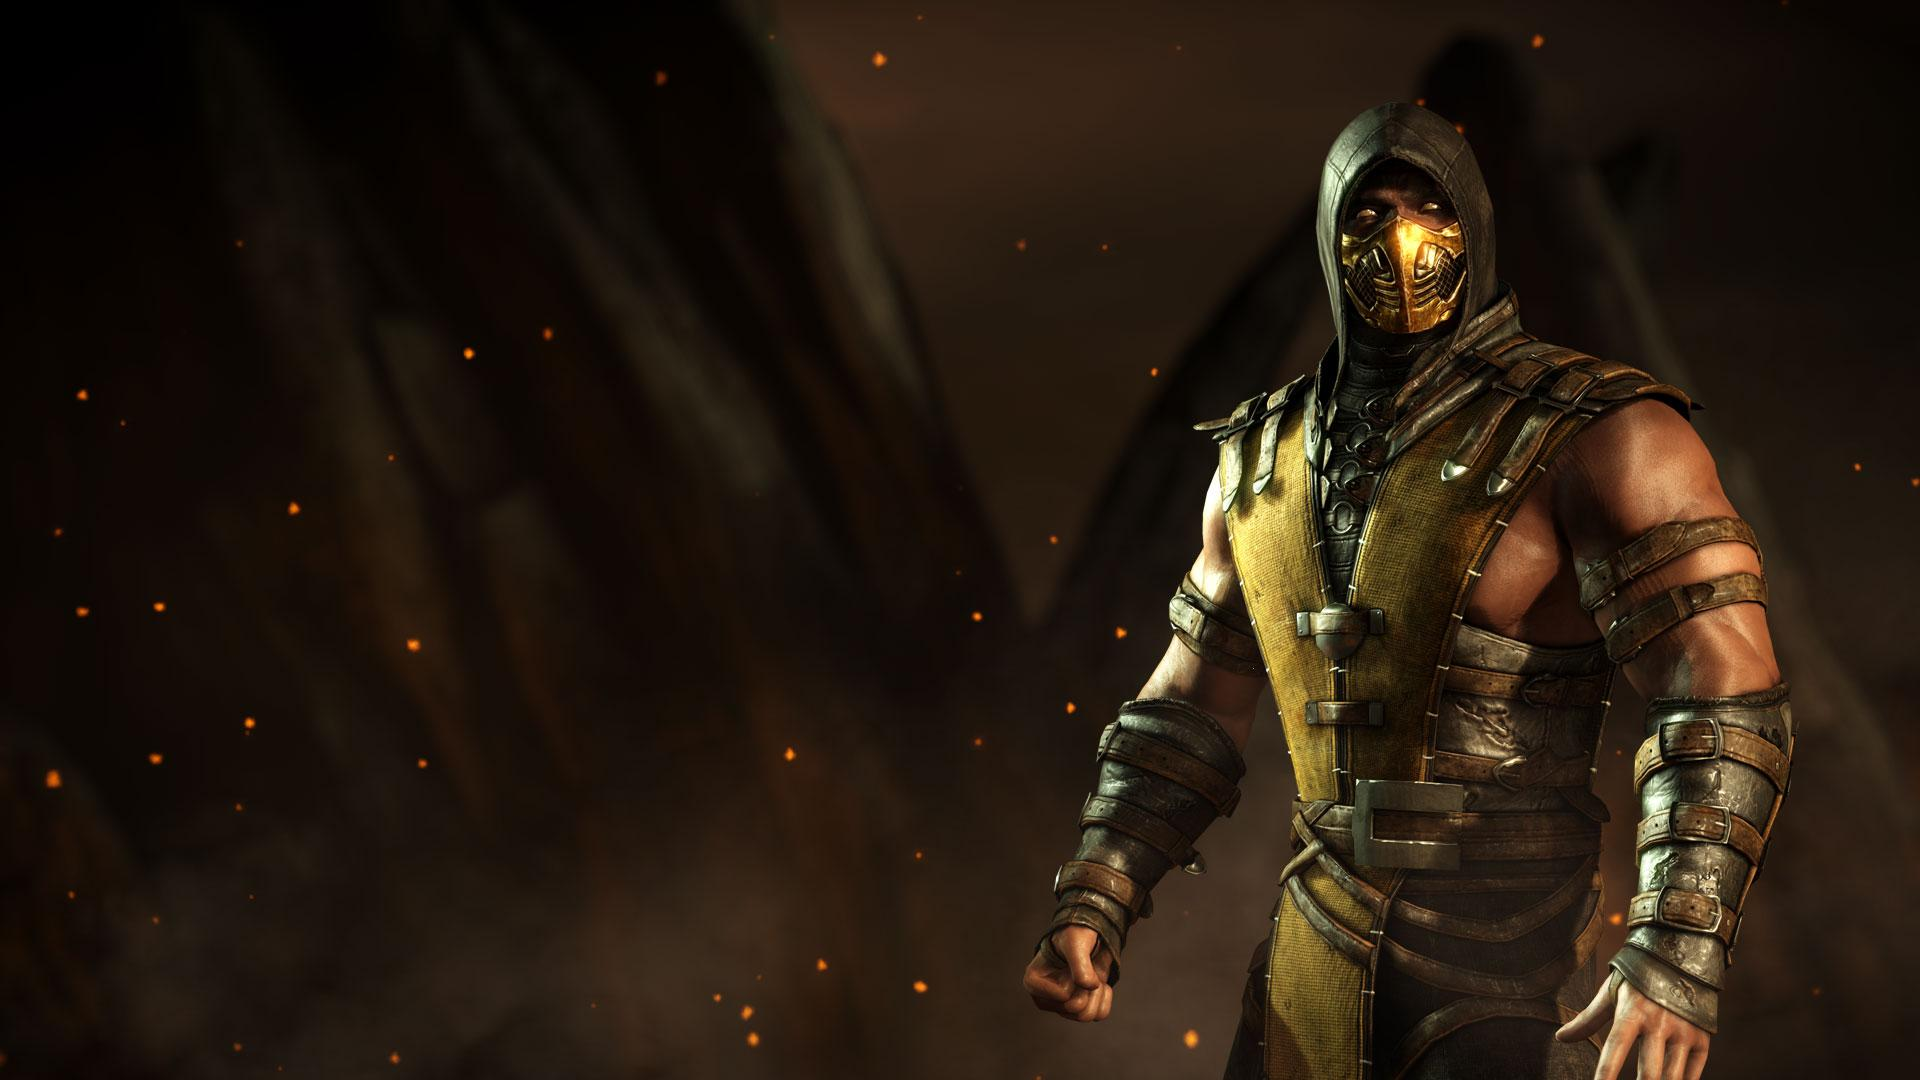 Mortal Kombat X Scorpio 3d Cool Video Games Wallpapers: Mortal Kombat X On PS4: Amazon Shares 10 Characters Bio